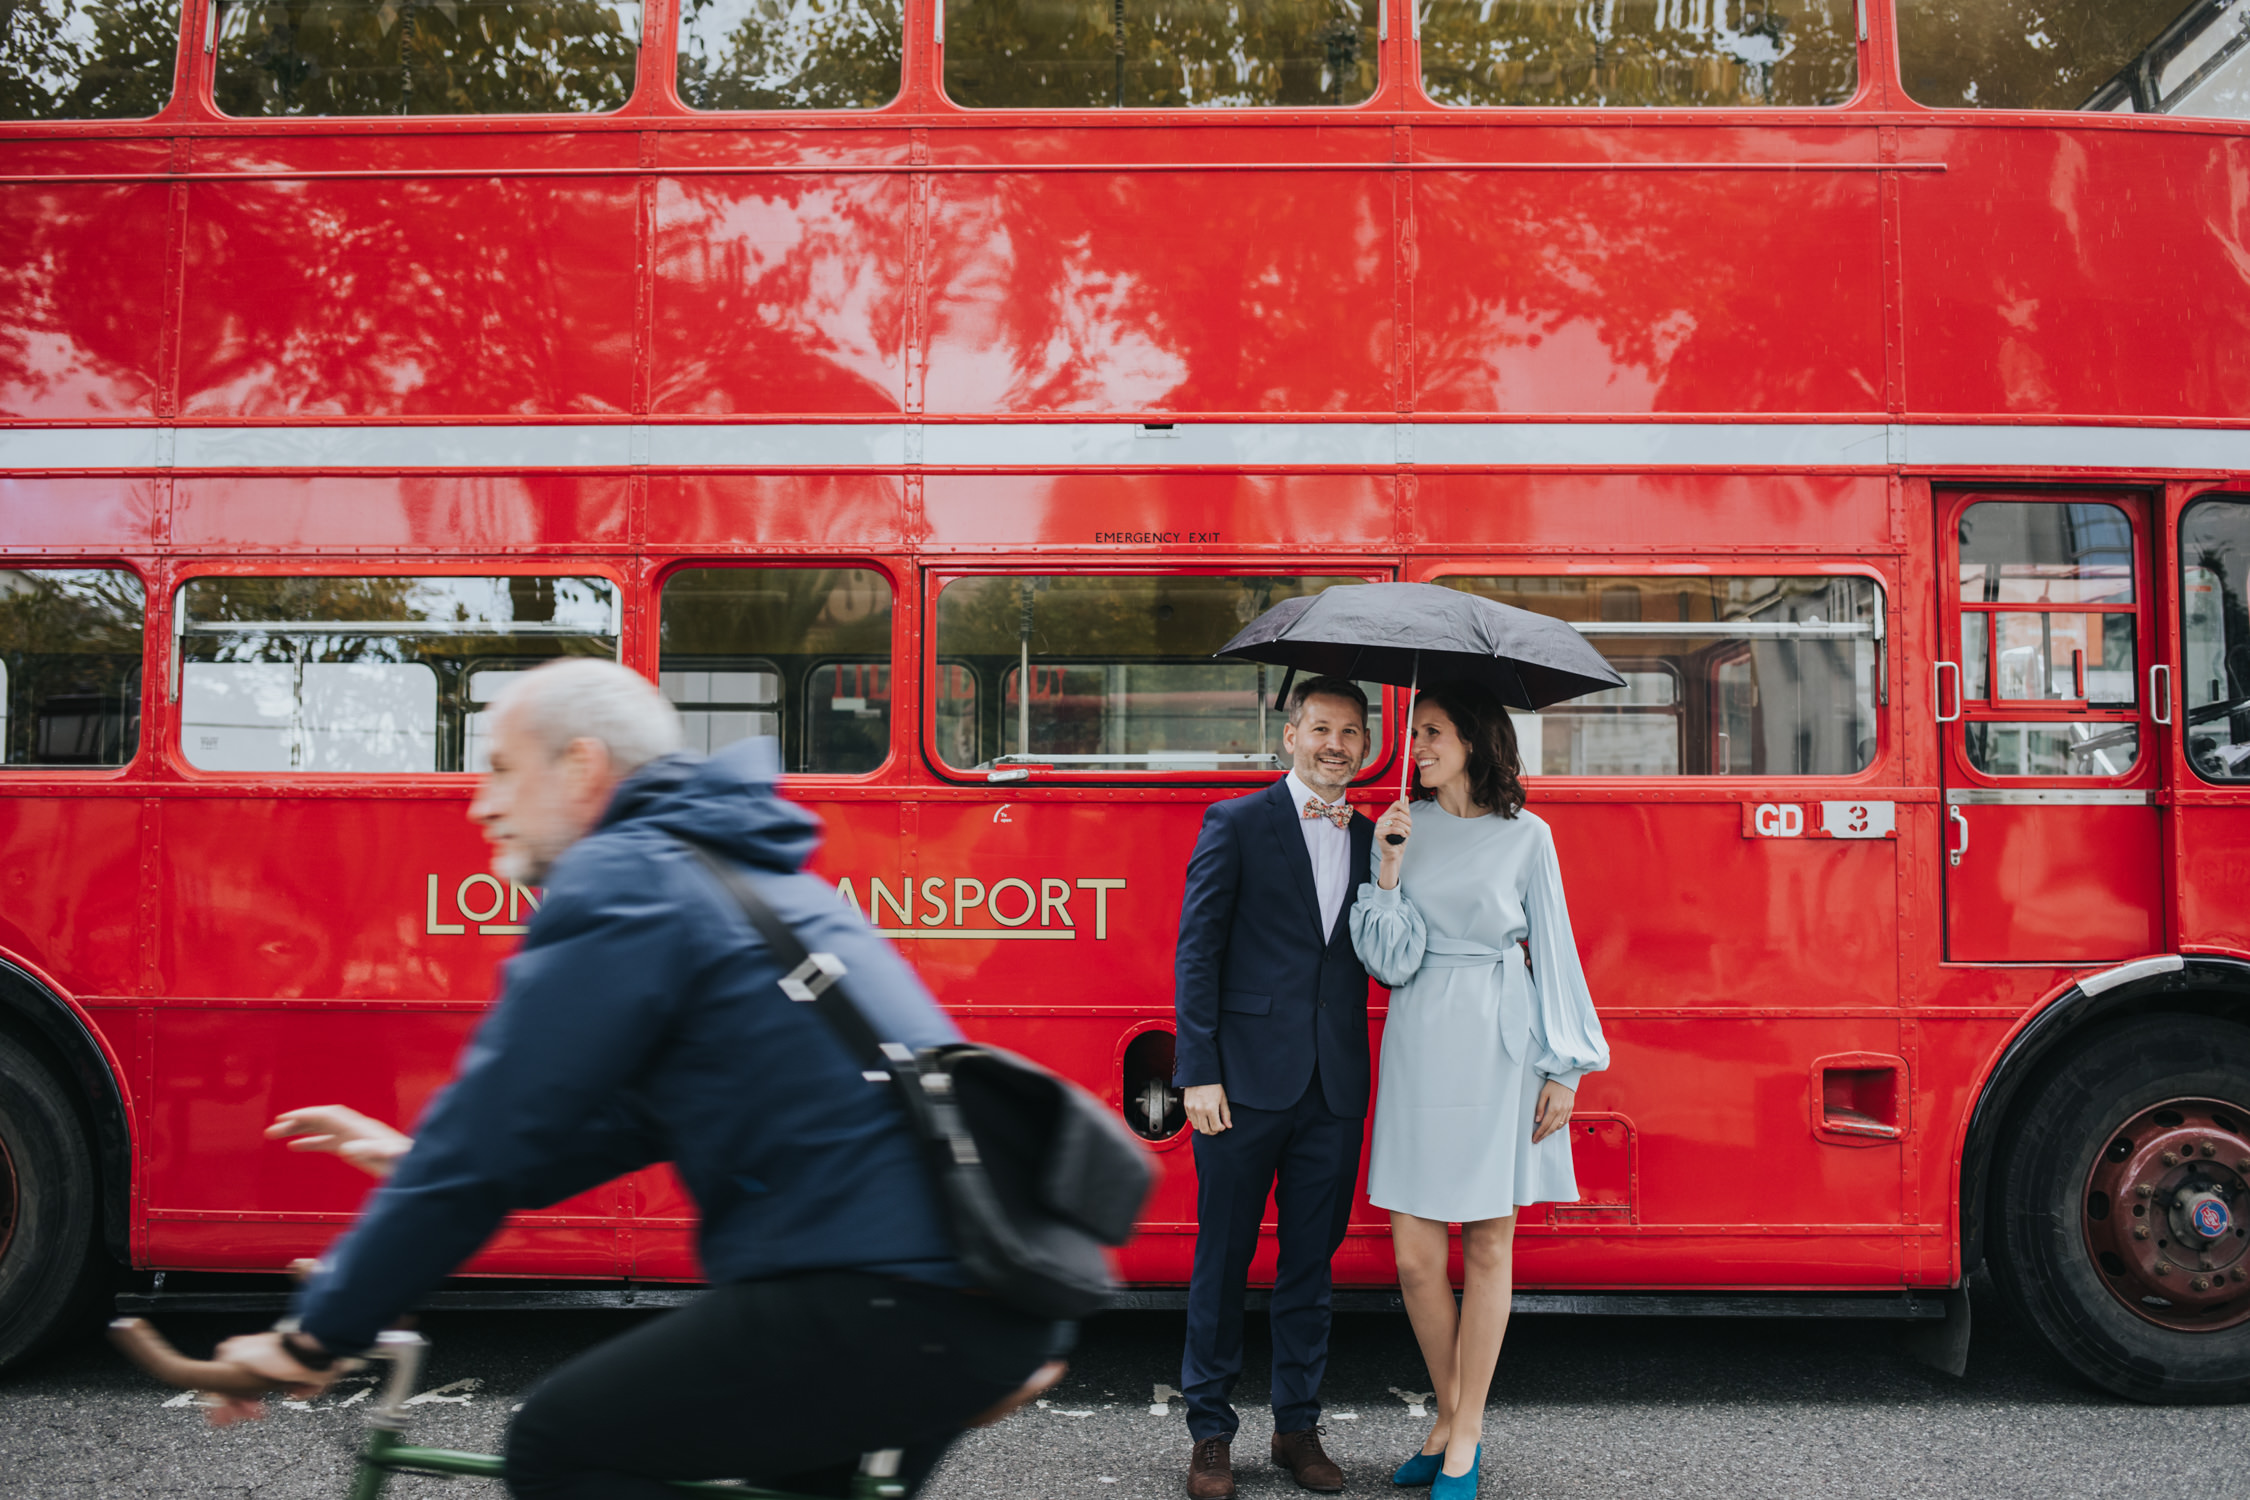 Hackney wedding picture with london bus